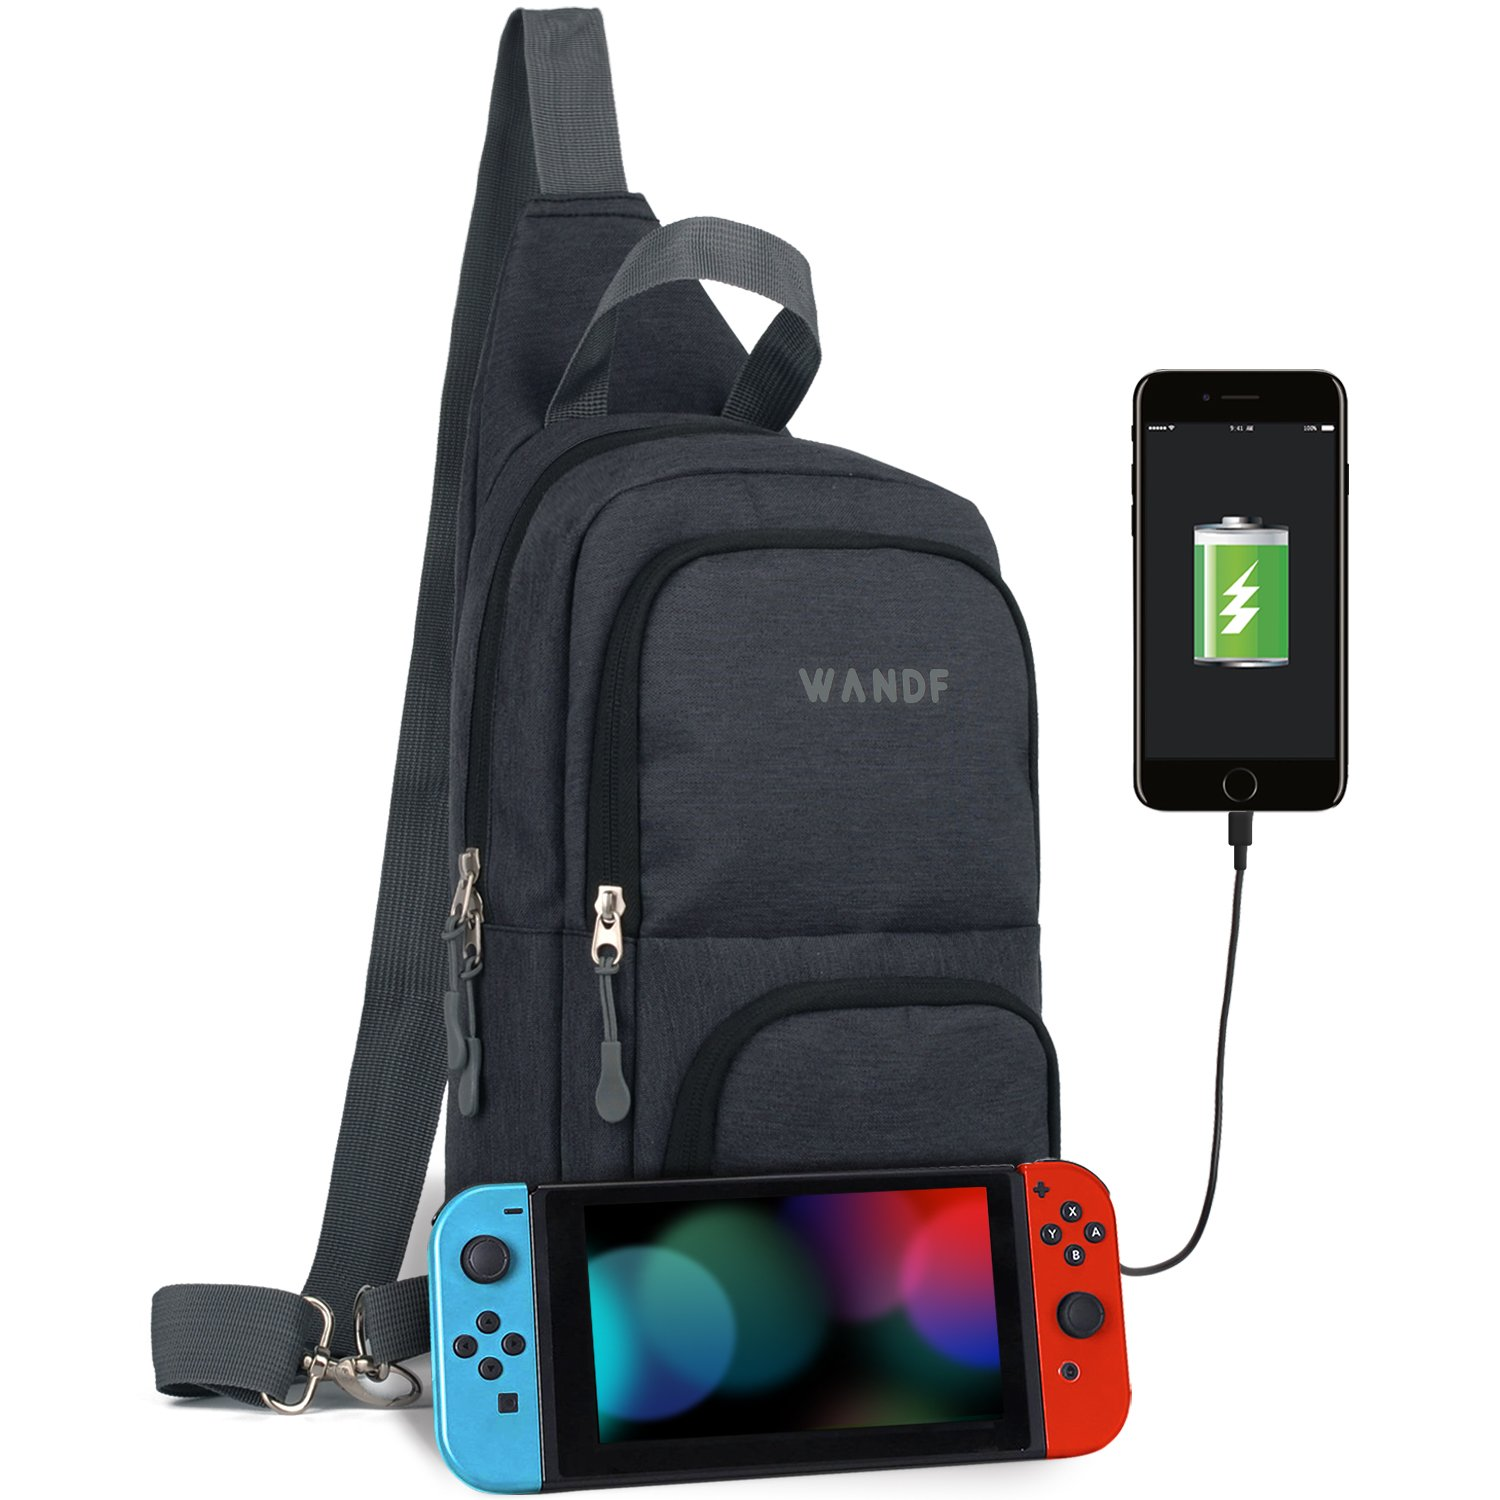 Victoriatourist WANDF Switch Travel Bag, for Nintendo Switch Console, Dock, Joy-Con Grip & Switch Accessories, Protective Storage Sling Backpack Shoulder Bag for Nintendo Switch and iPad (Black-new)